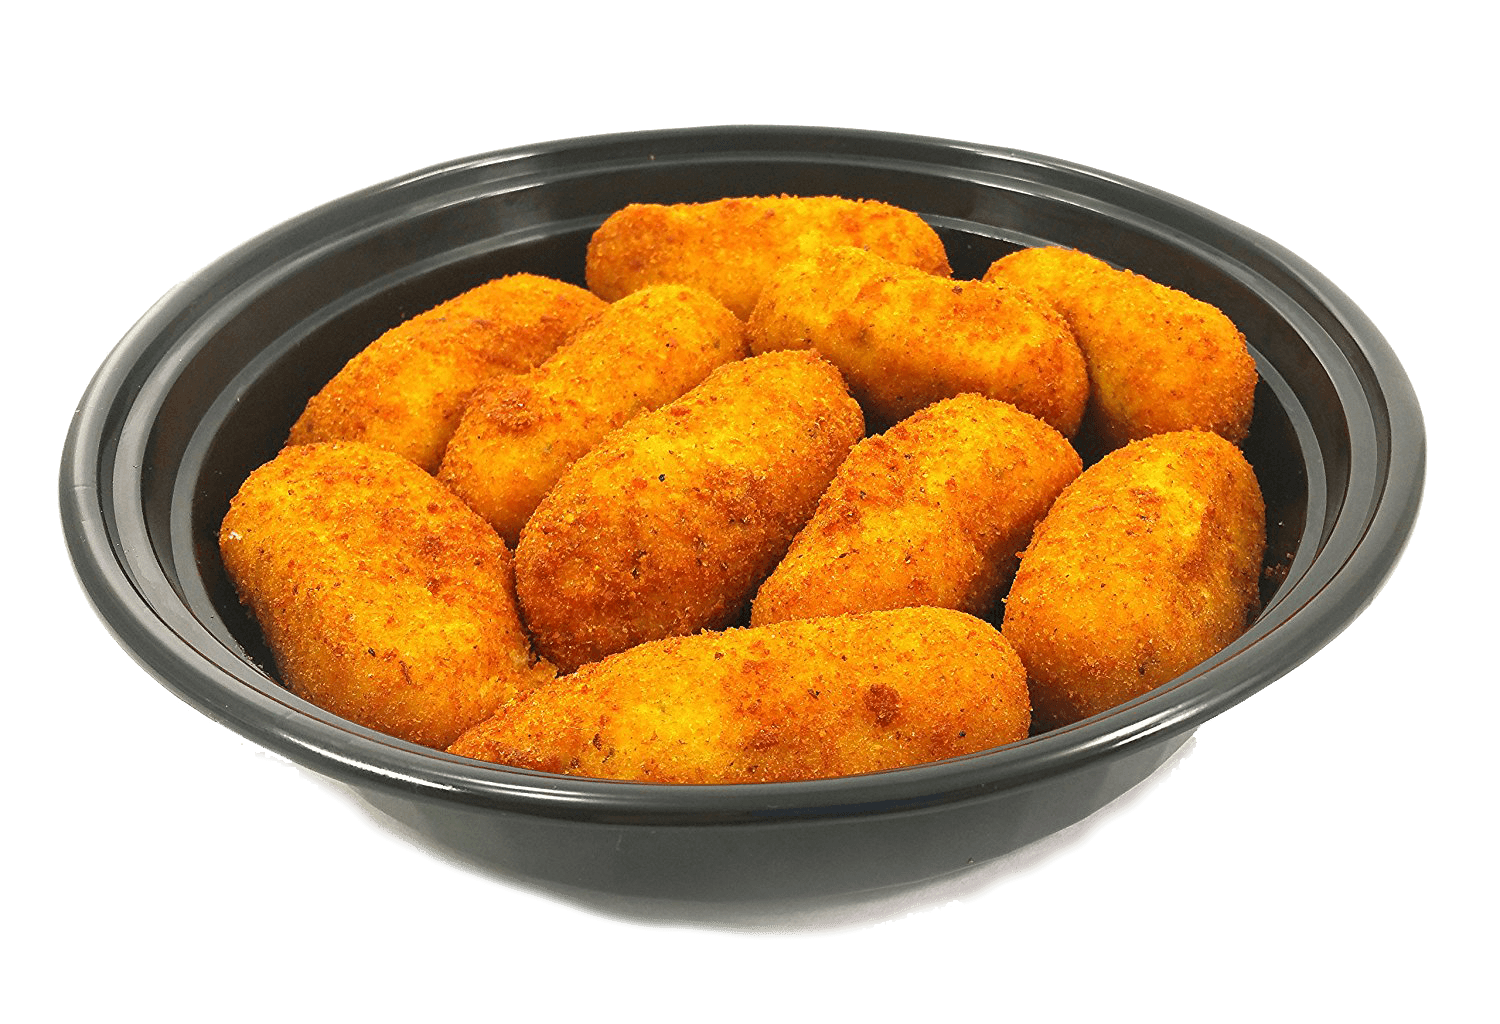 Prepared Food - Freshly Made Potato Croquettes (Crocchette Di Patate) Heat And Serve 10 Pieces